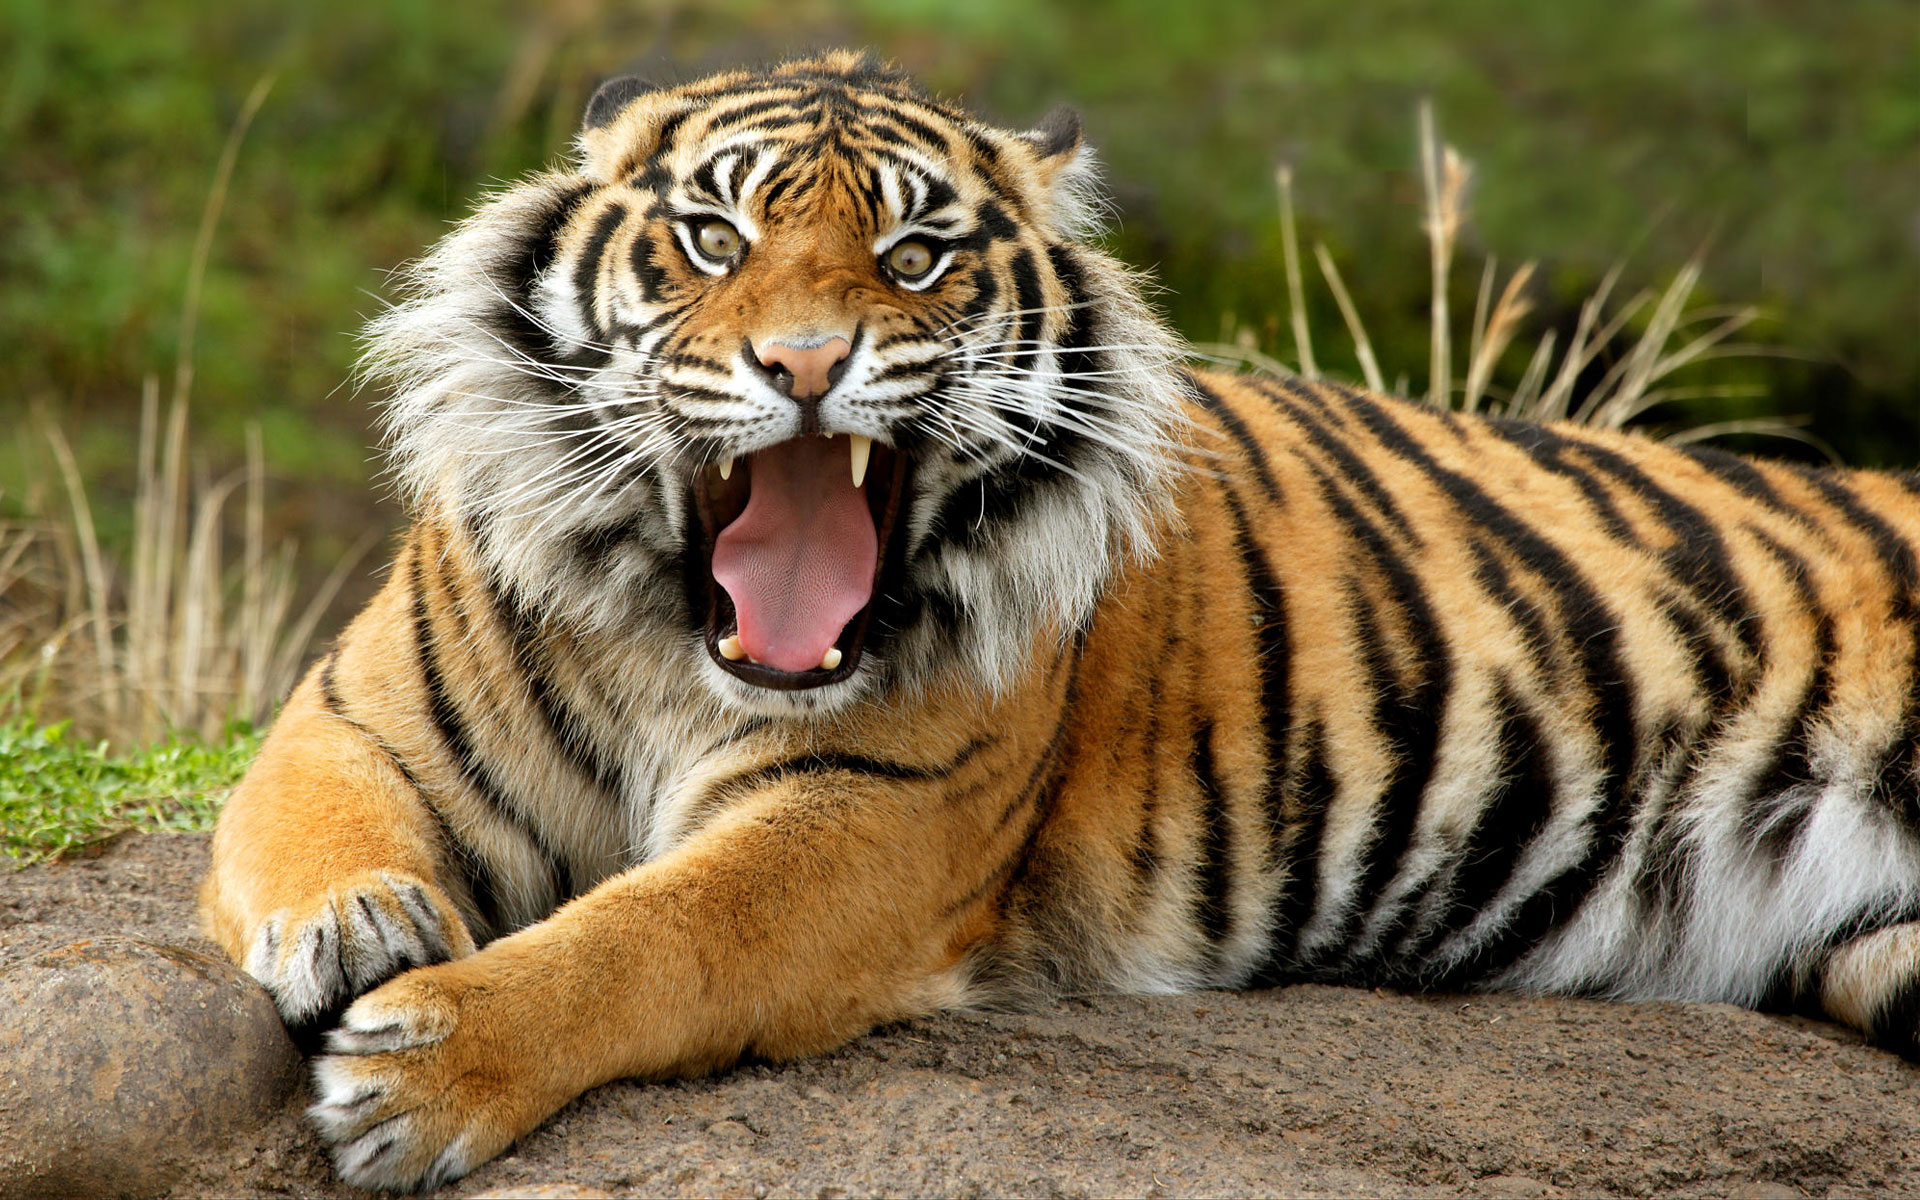 Hd Tiger Pictures Tiger Wallpapers: Tiger Wallpapers Hd Free Download